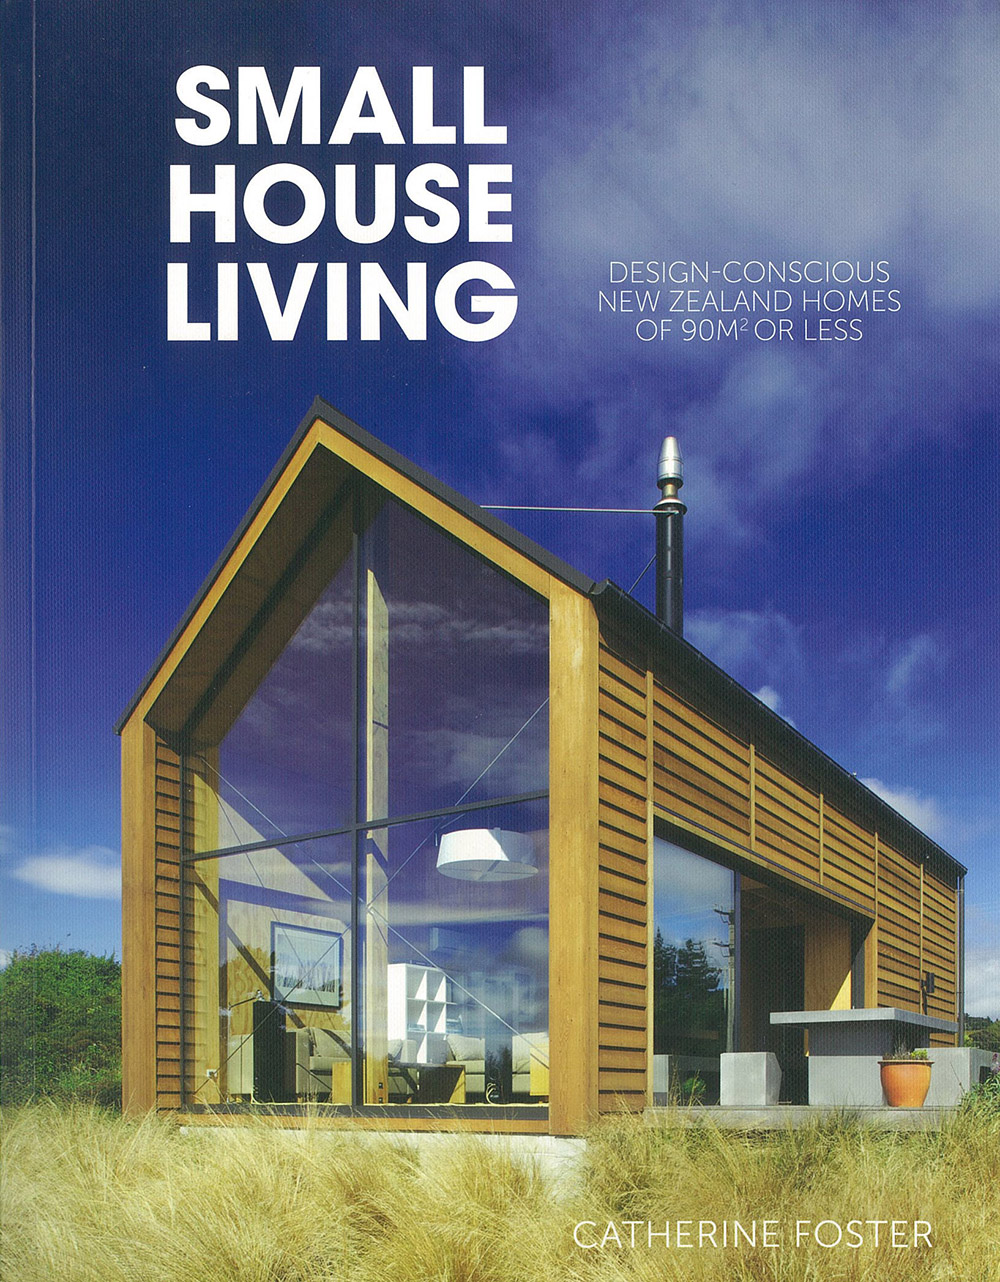 small house living cover - Small House Living